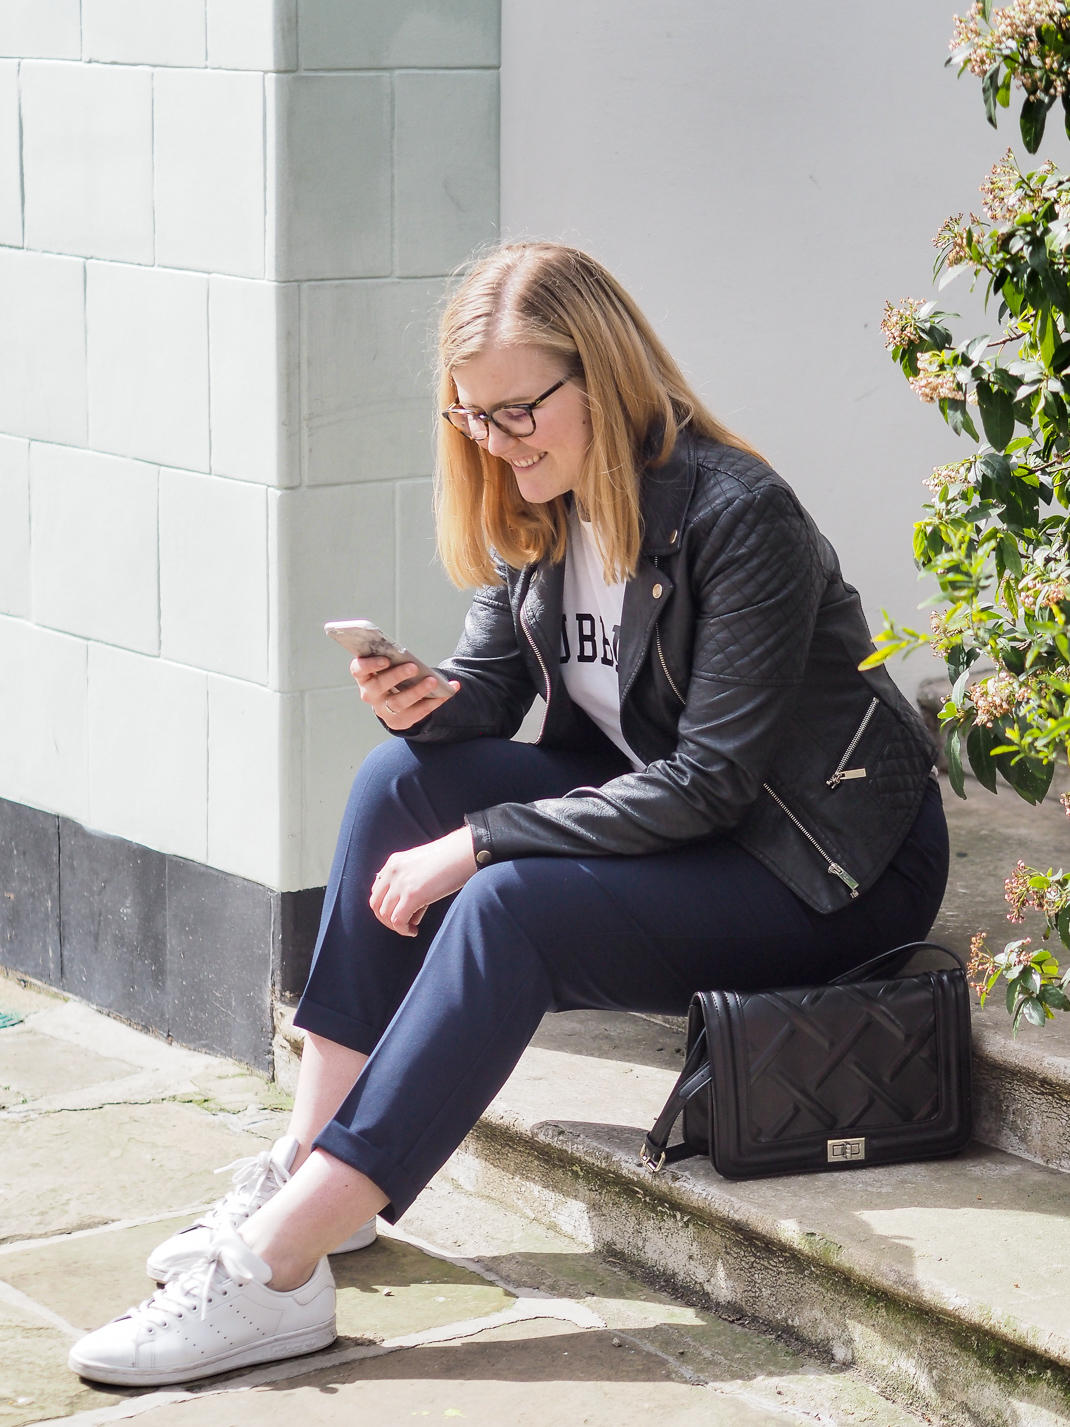 blogger on her phone